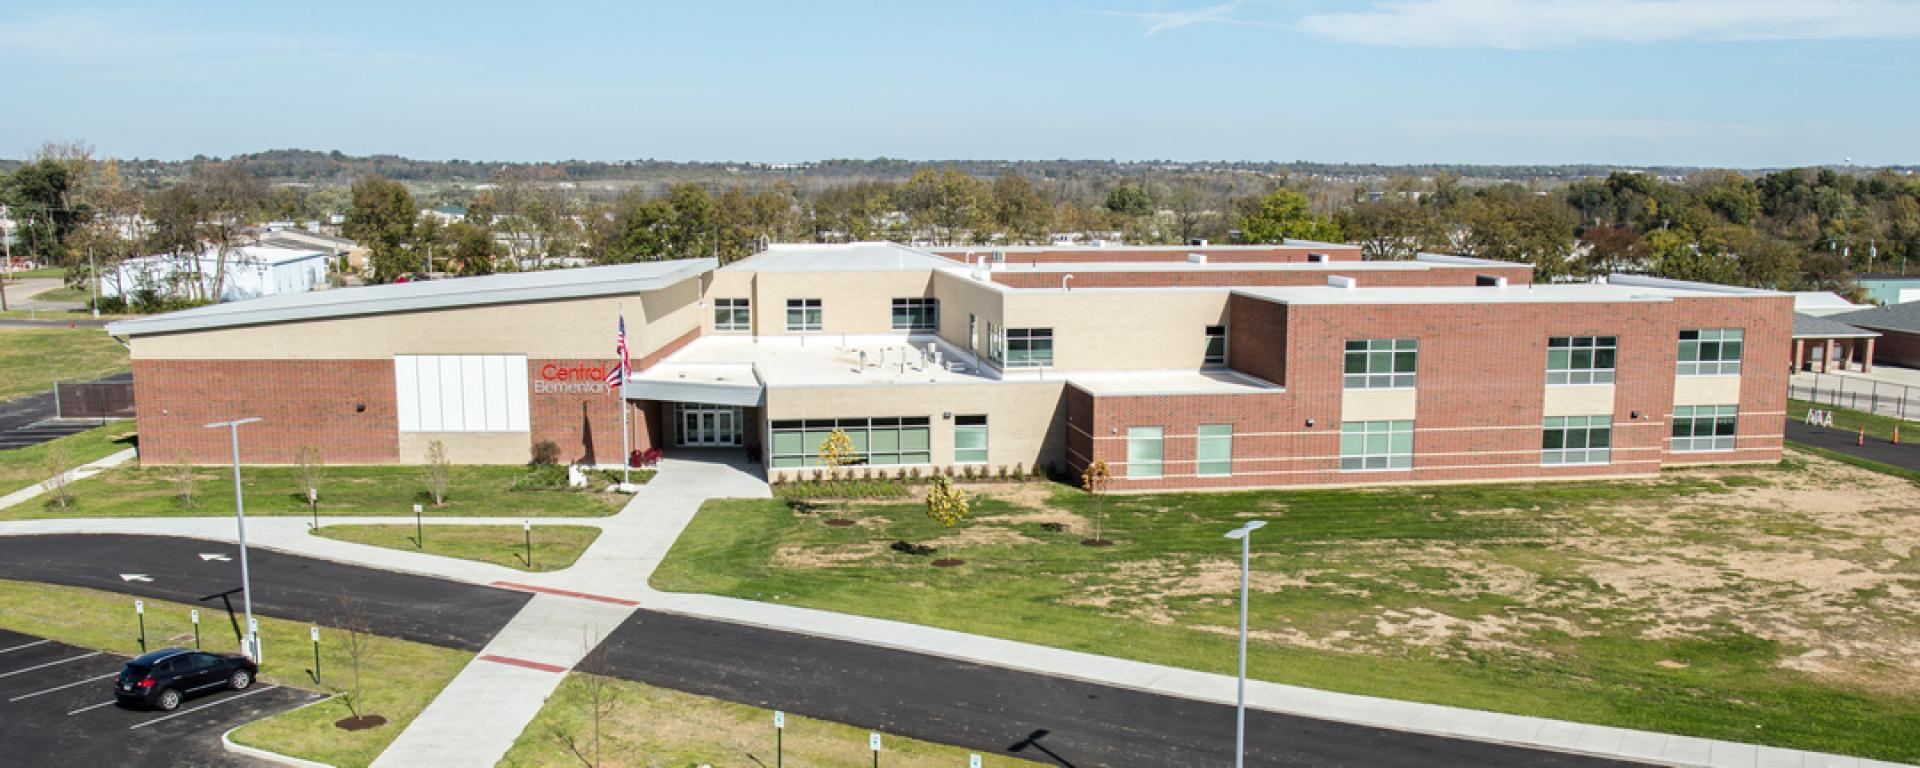 Aerial view of Fairfield Central Elementary School